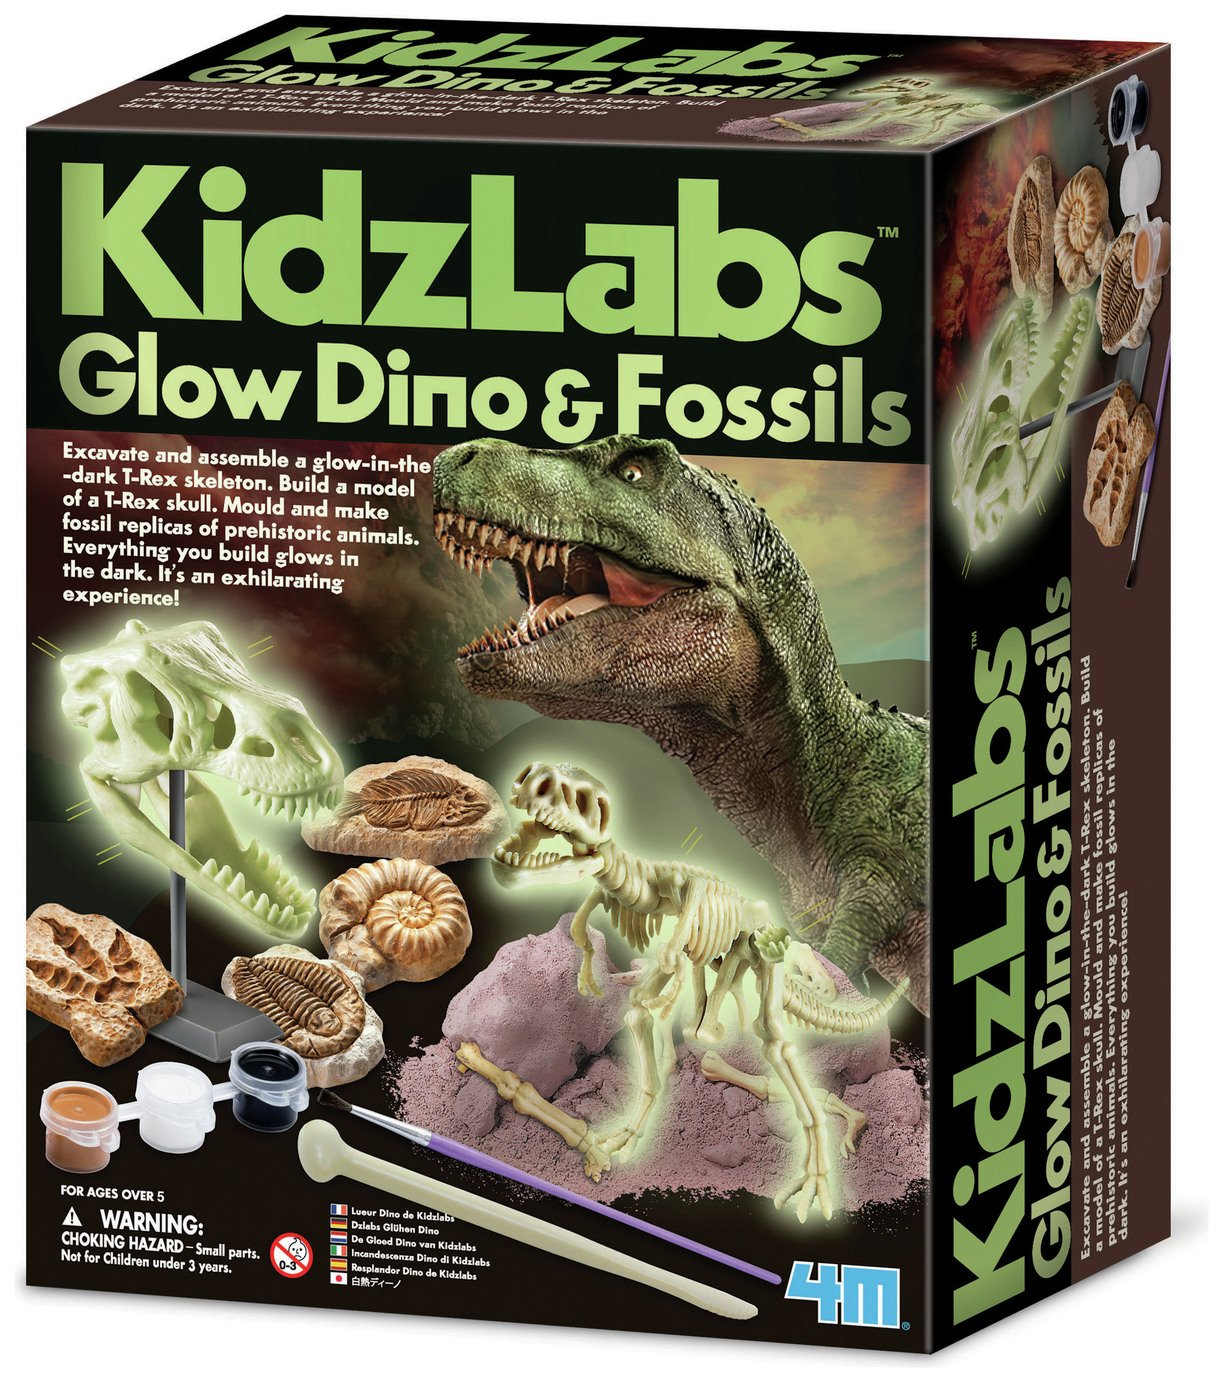 Image of 4M Kidz Labs Glow Dino and Fossils Kit.